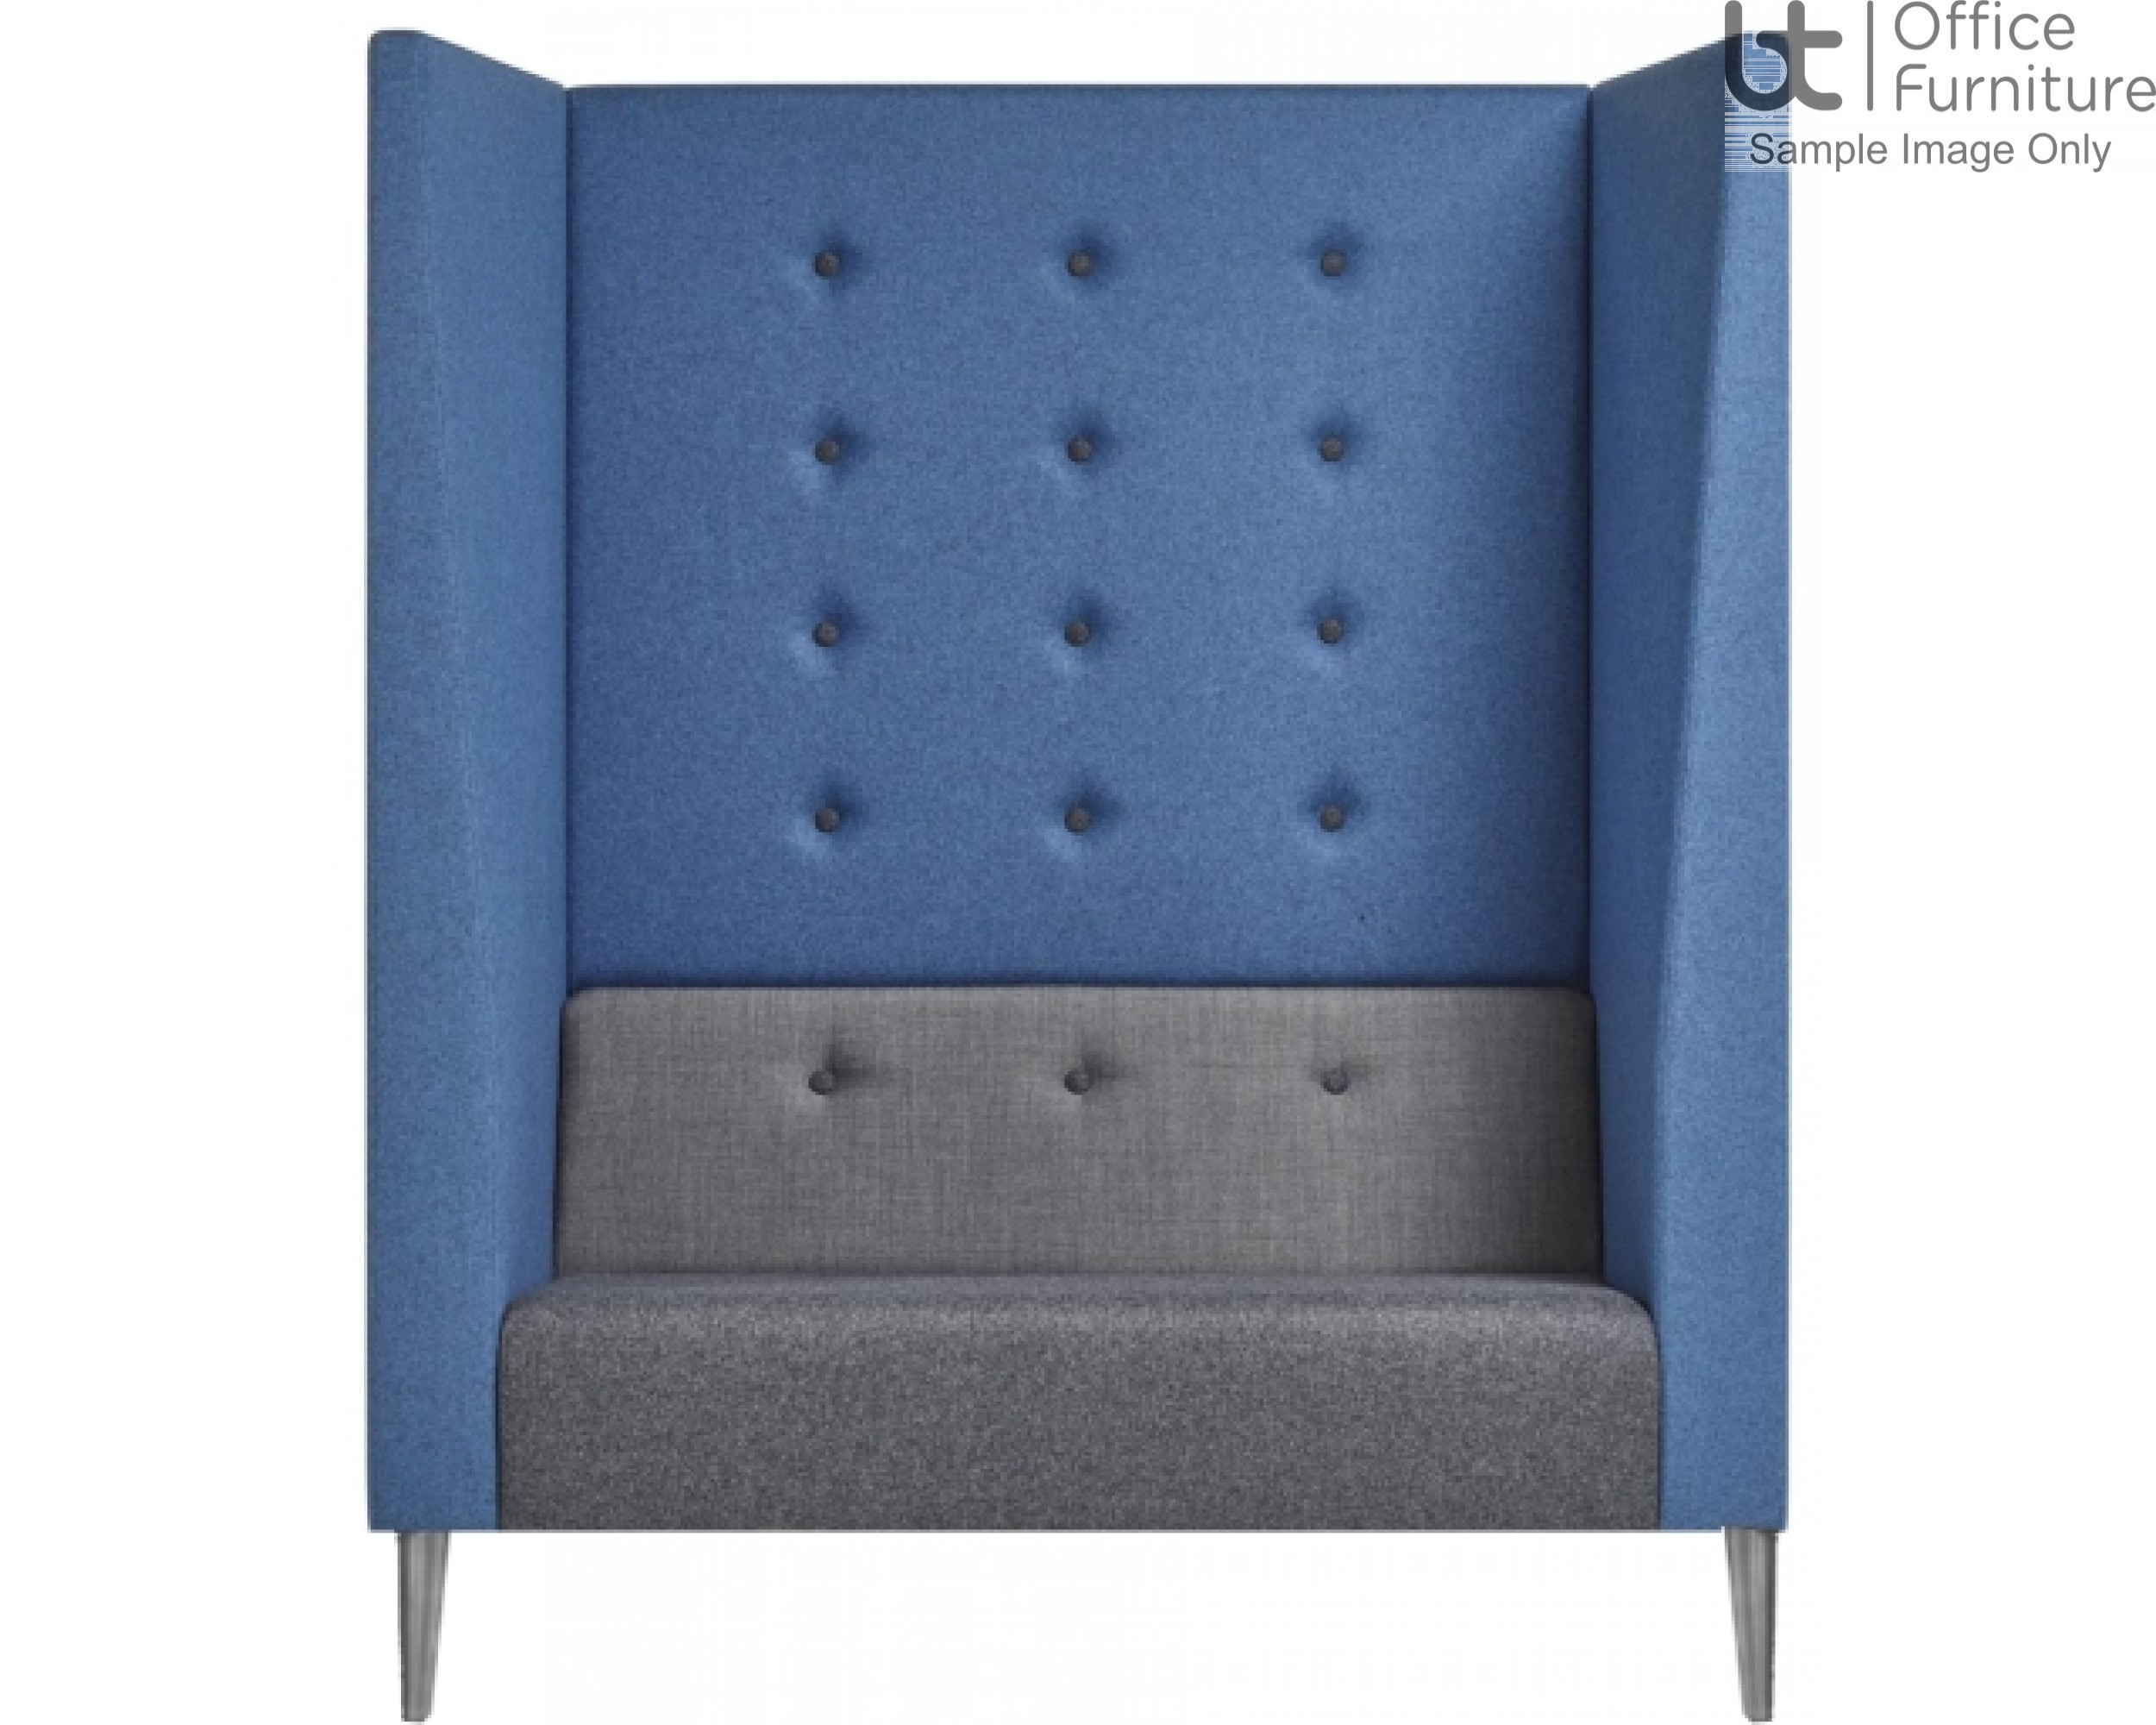 Verco Pod/Booth - Jensen-Up Plus - Two Person Unit with High Acoustic Surround